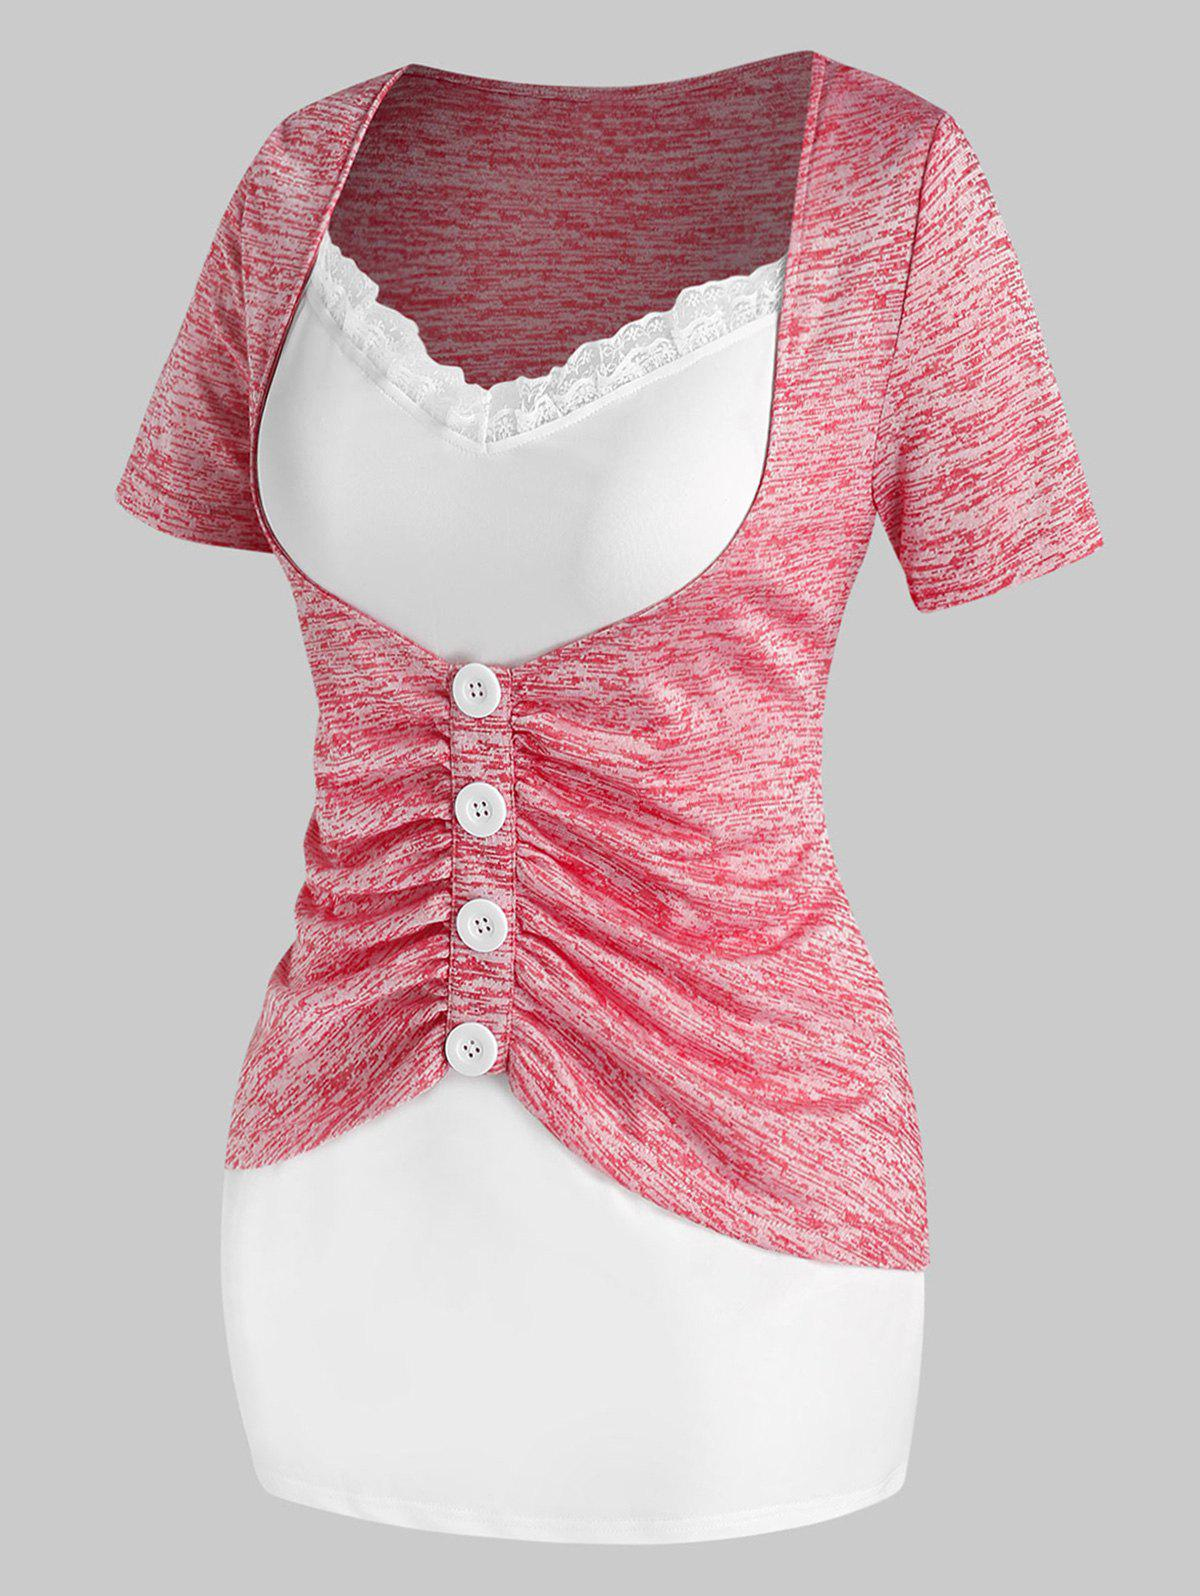 Plus Size Mock Button Ruched Twofer T Shirt - BLUSH RED 5X